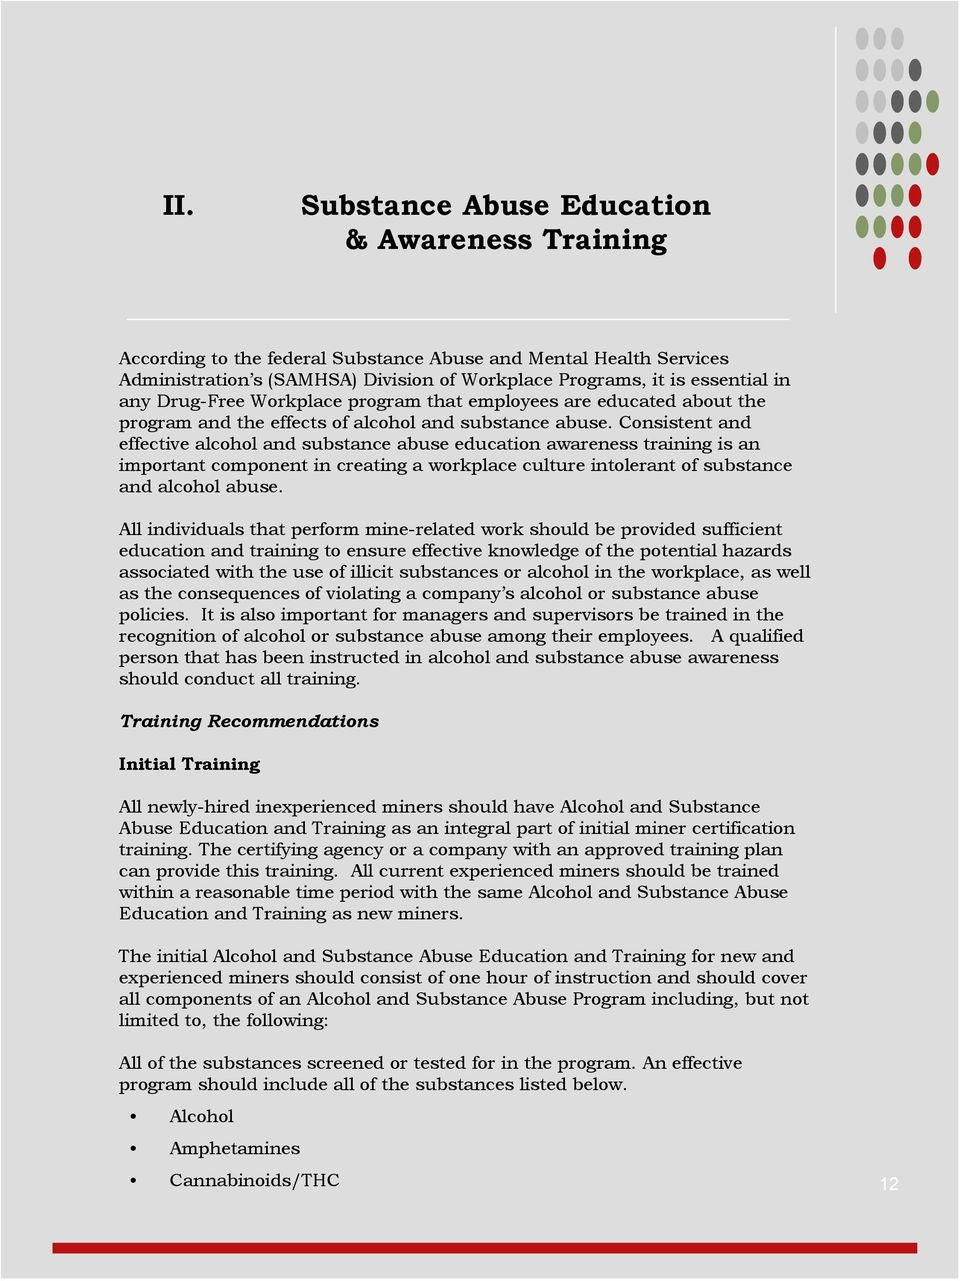 Consistent and effective alcohol and substance abuse education awareness training is an important component in creating a workplace culture intolerant of substance and alcohol abuse.